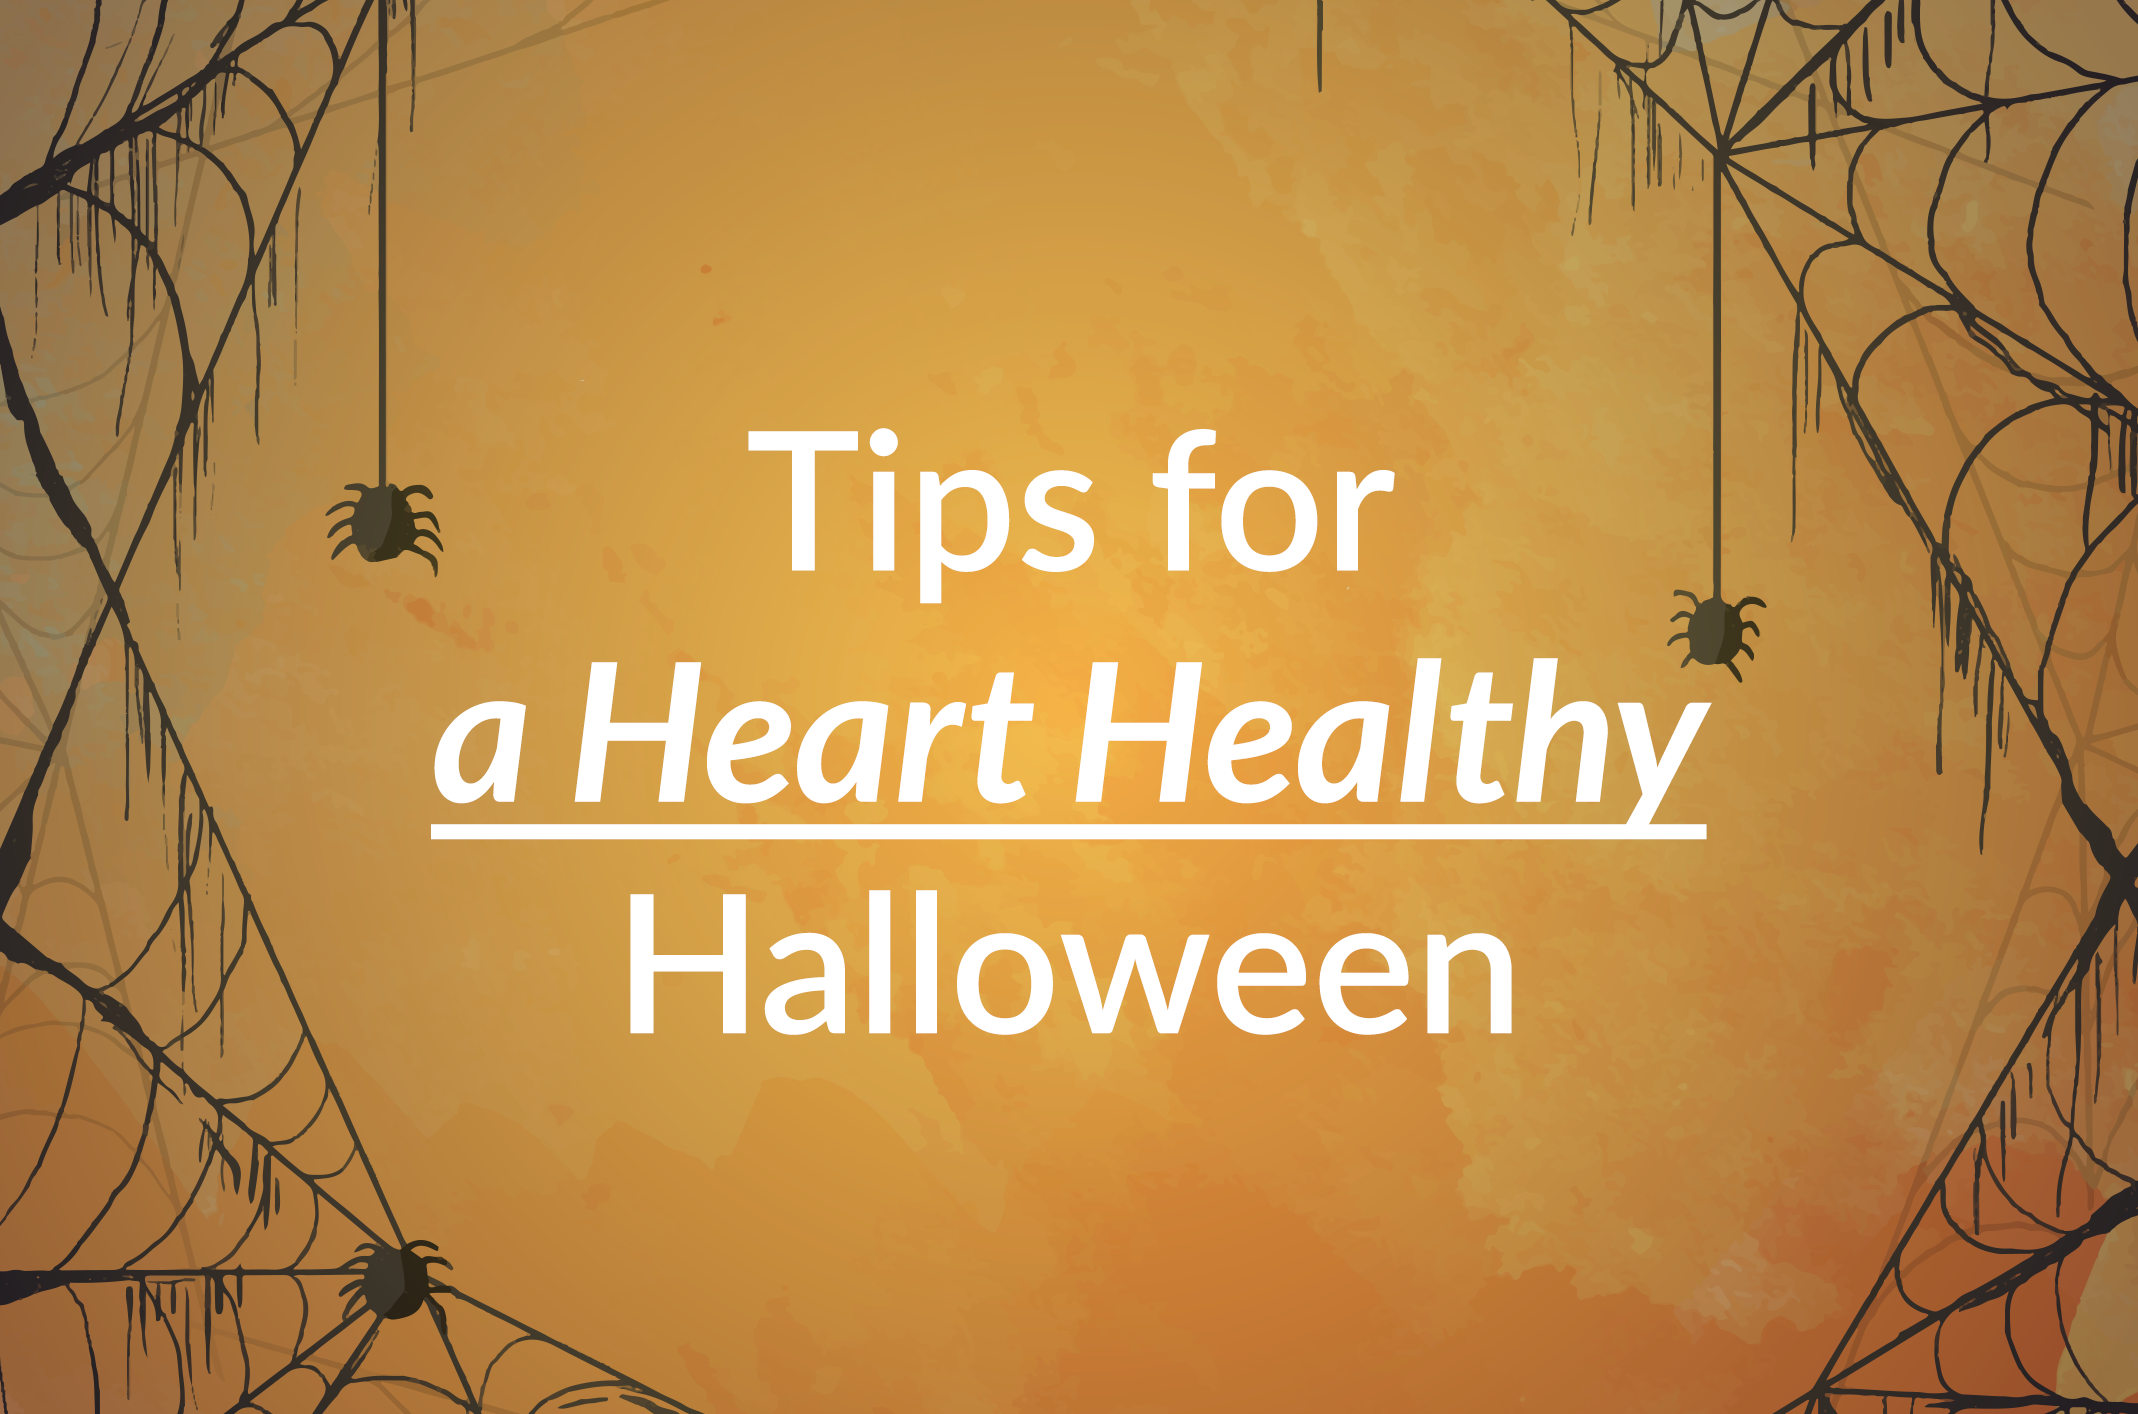 tips for a heart healthy halloween